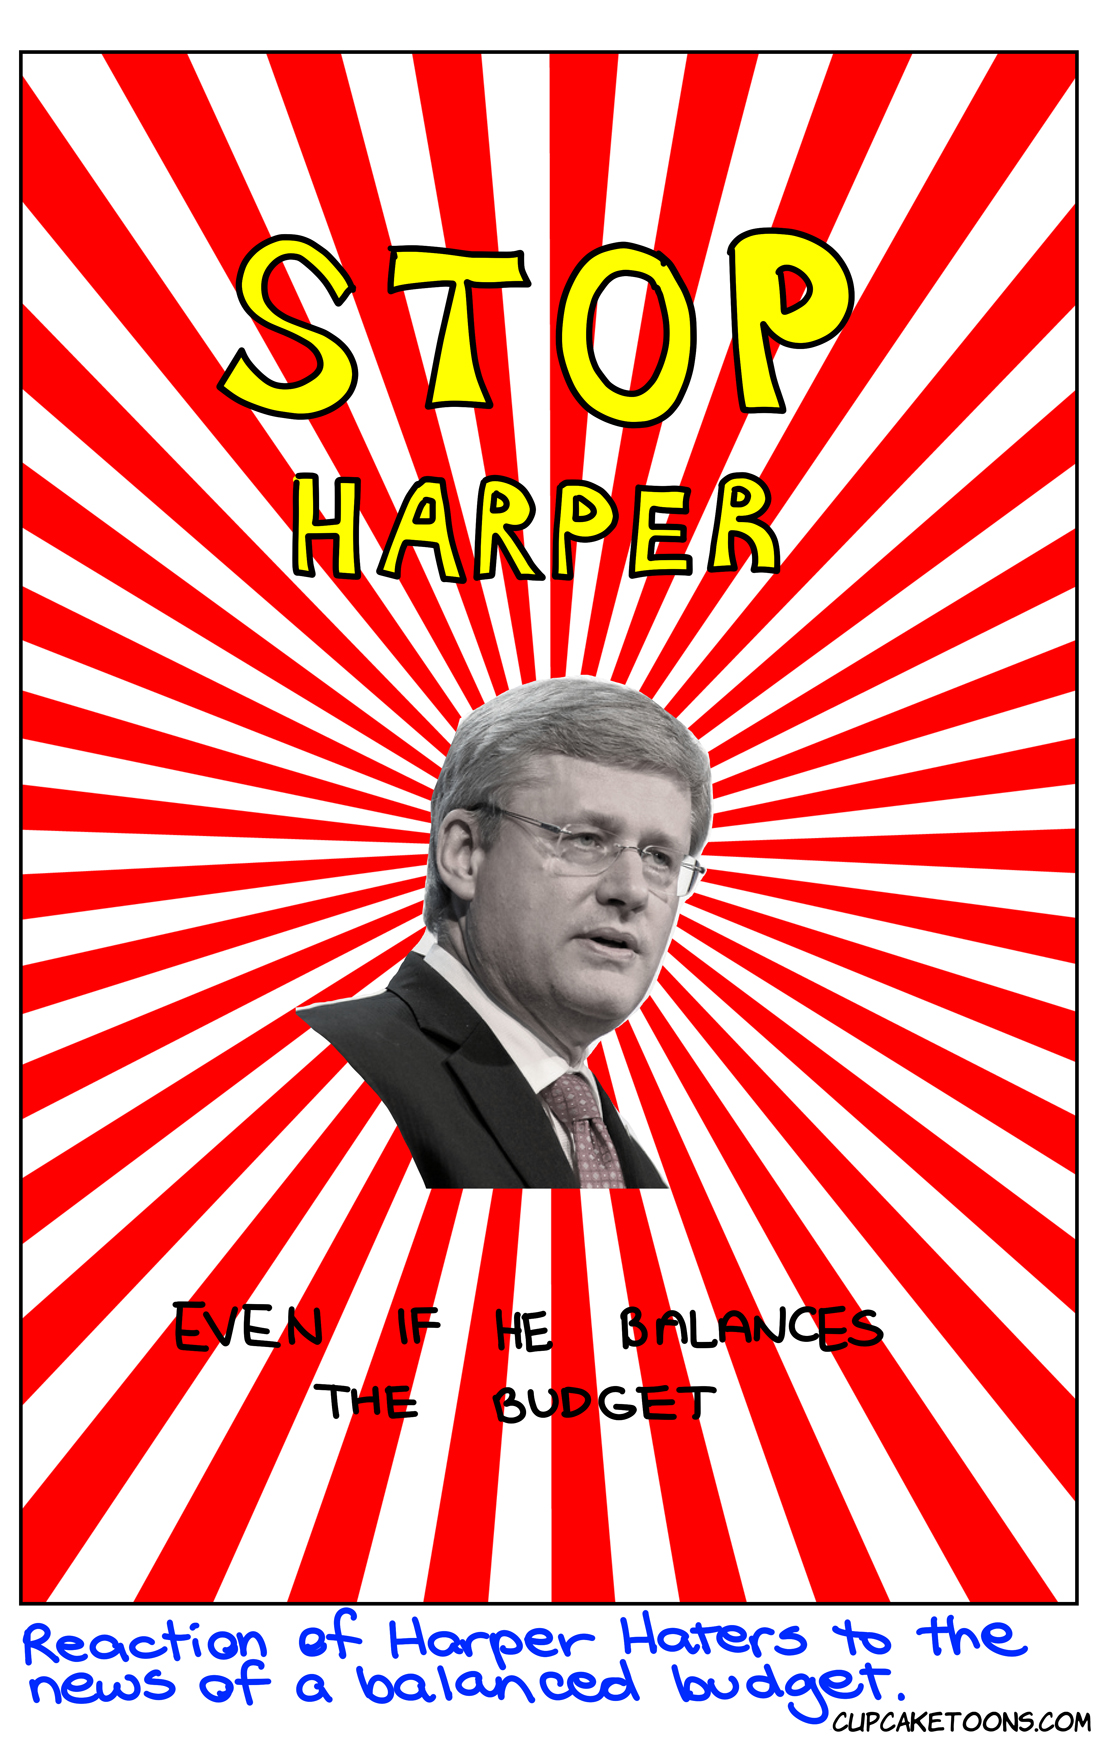 Stop Harper poster after balanced budget